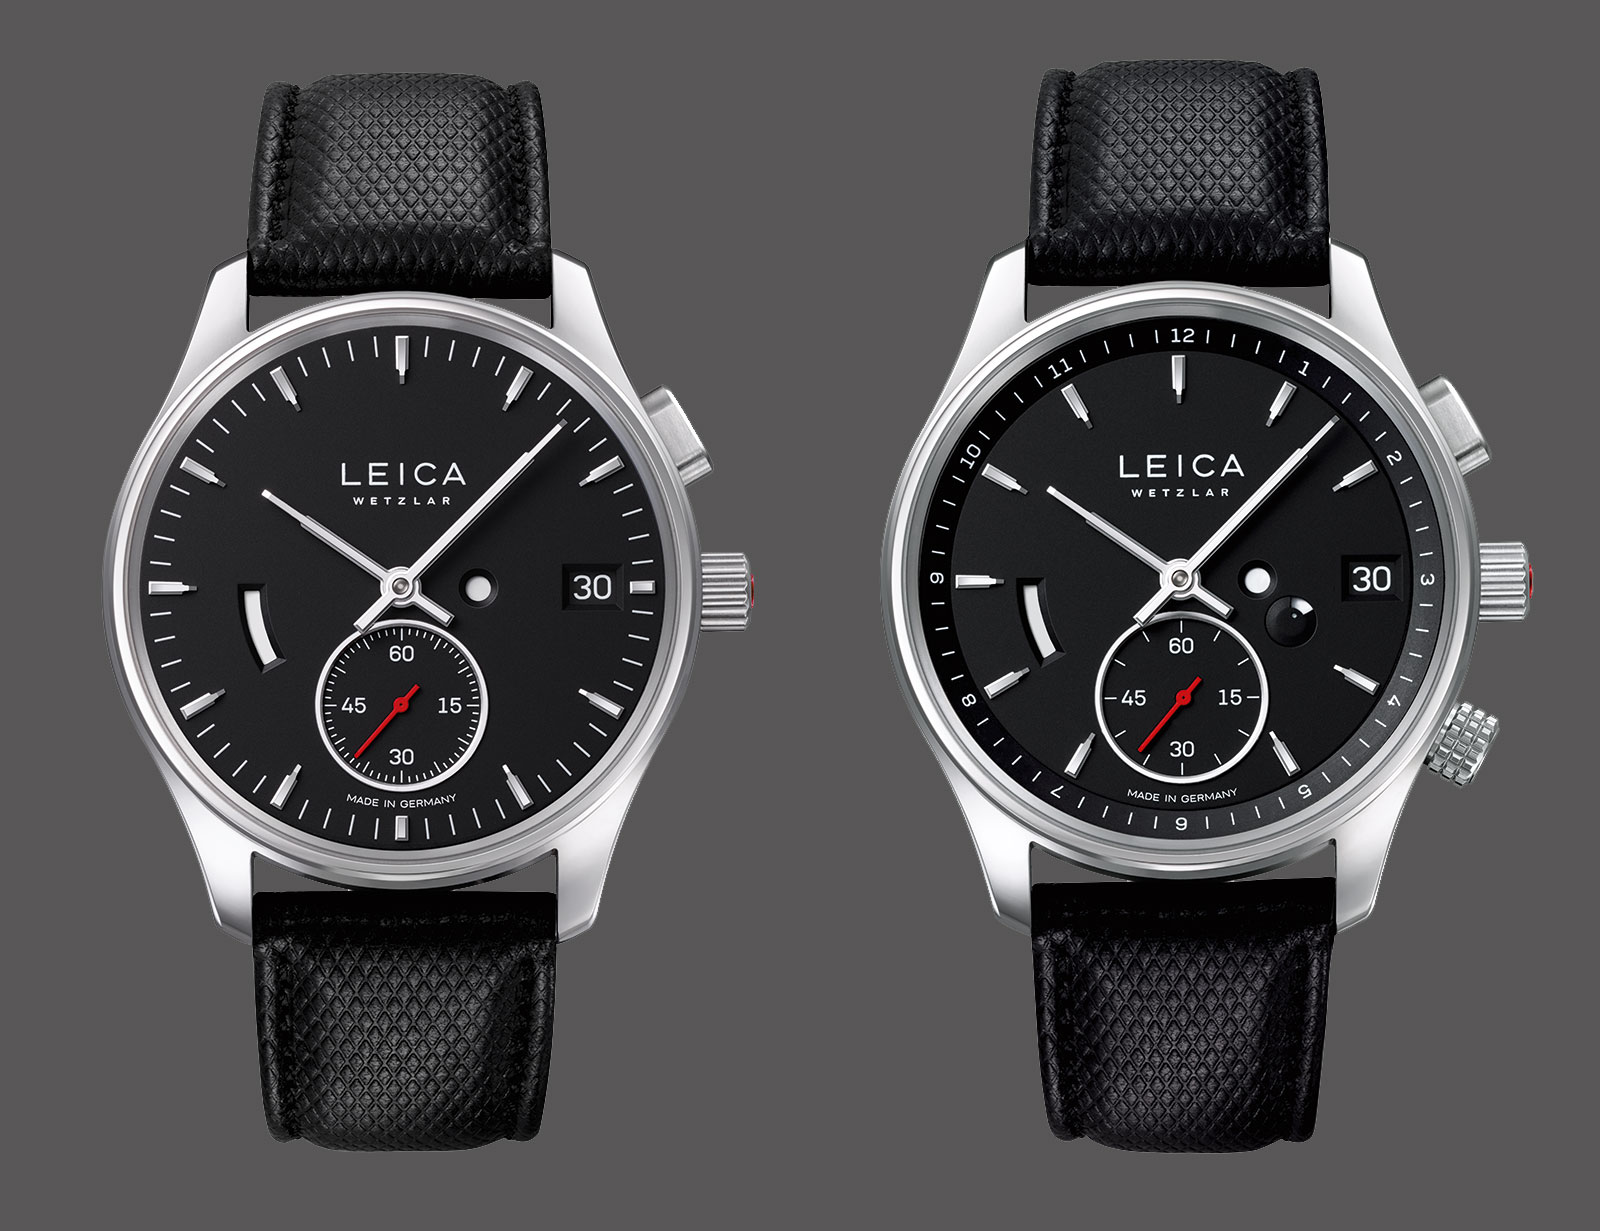 Leica watch L1 and L2